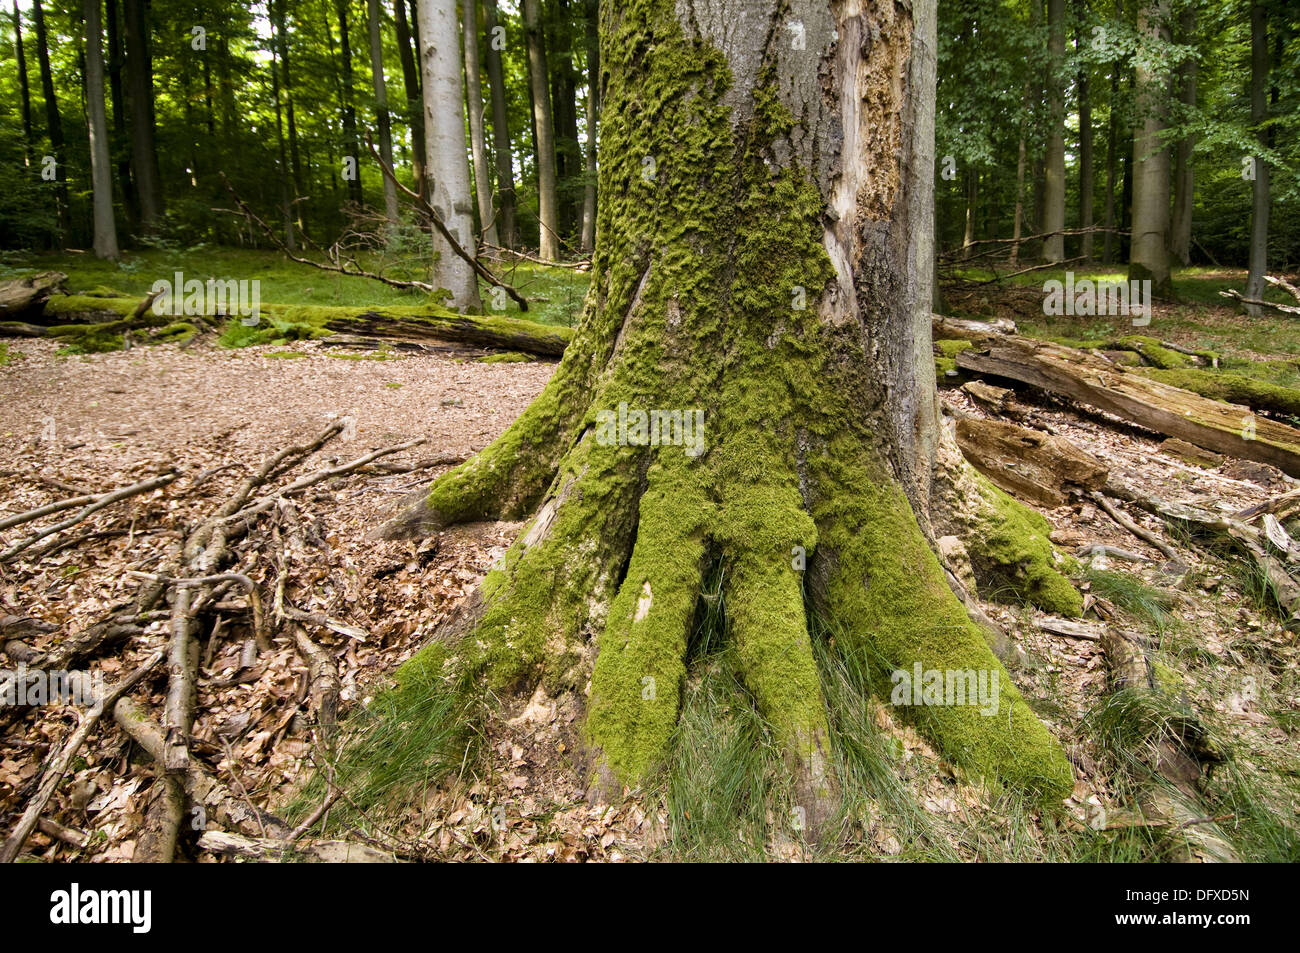 Primeval beech forest, Steigerwald, dead tree trunk, covered by mosses, Bavaria, Germany - Stock Image